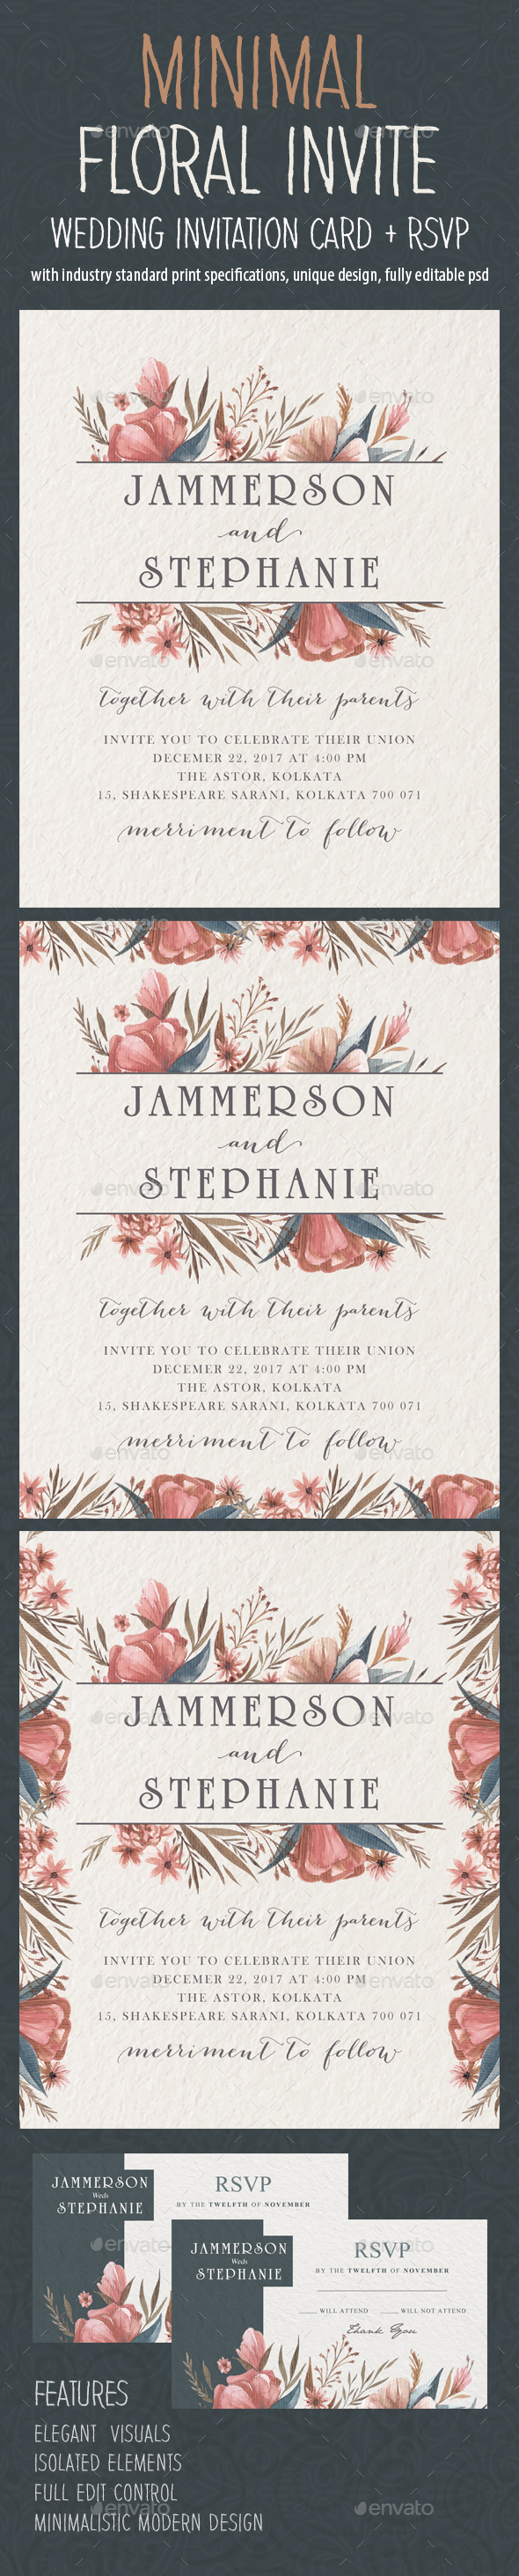 GraphicRiver Minimal Floral Wedding Invite 02 21062145